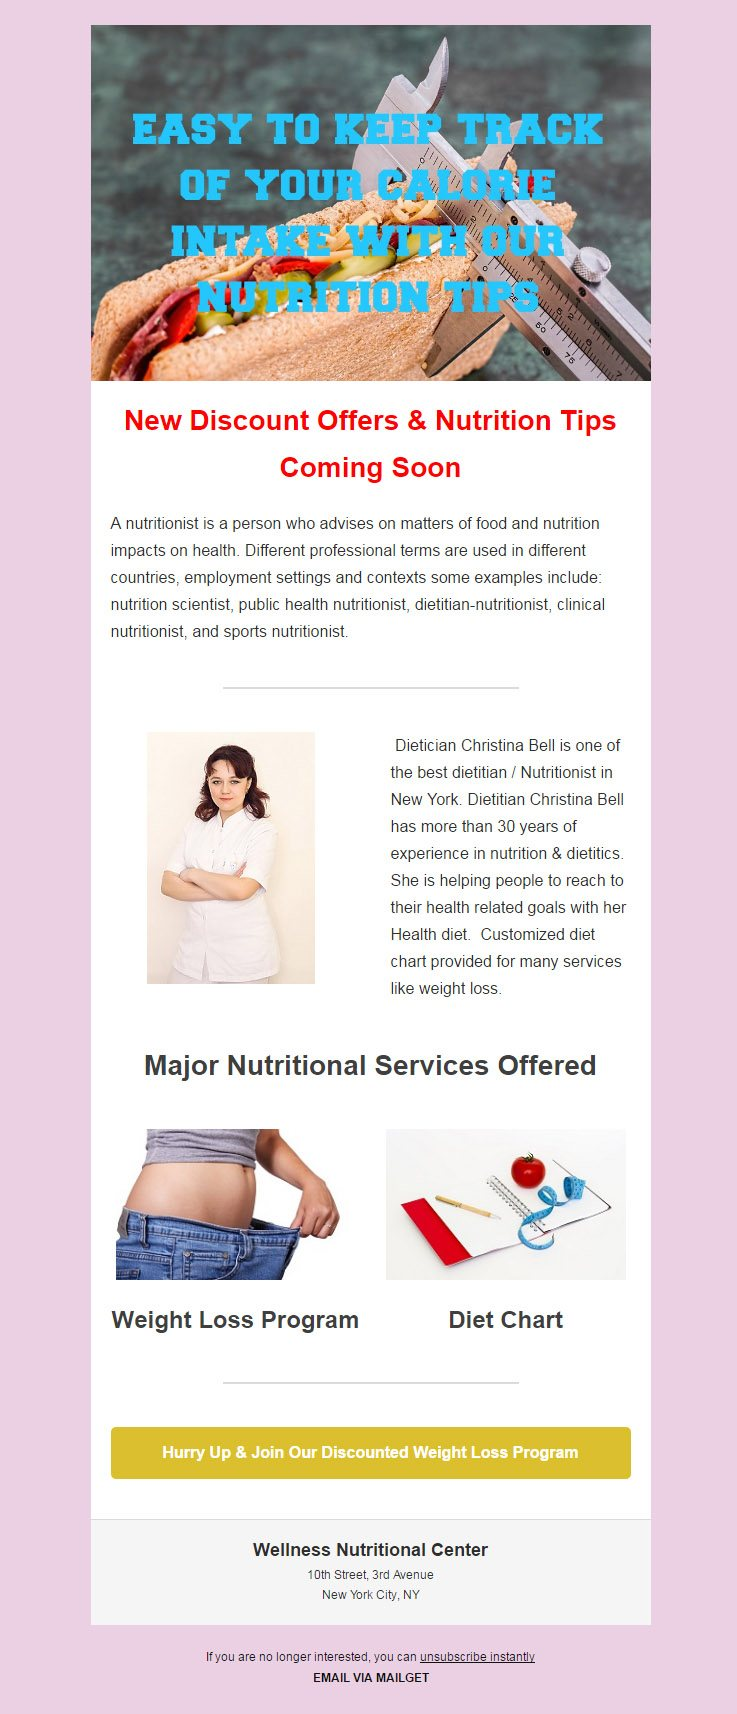 Email Marketing Service For Physicians & Nutritionist